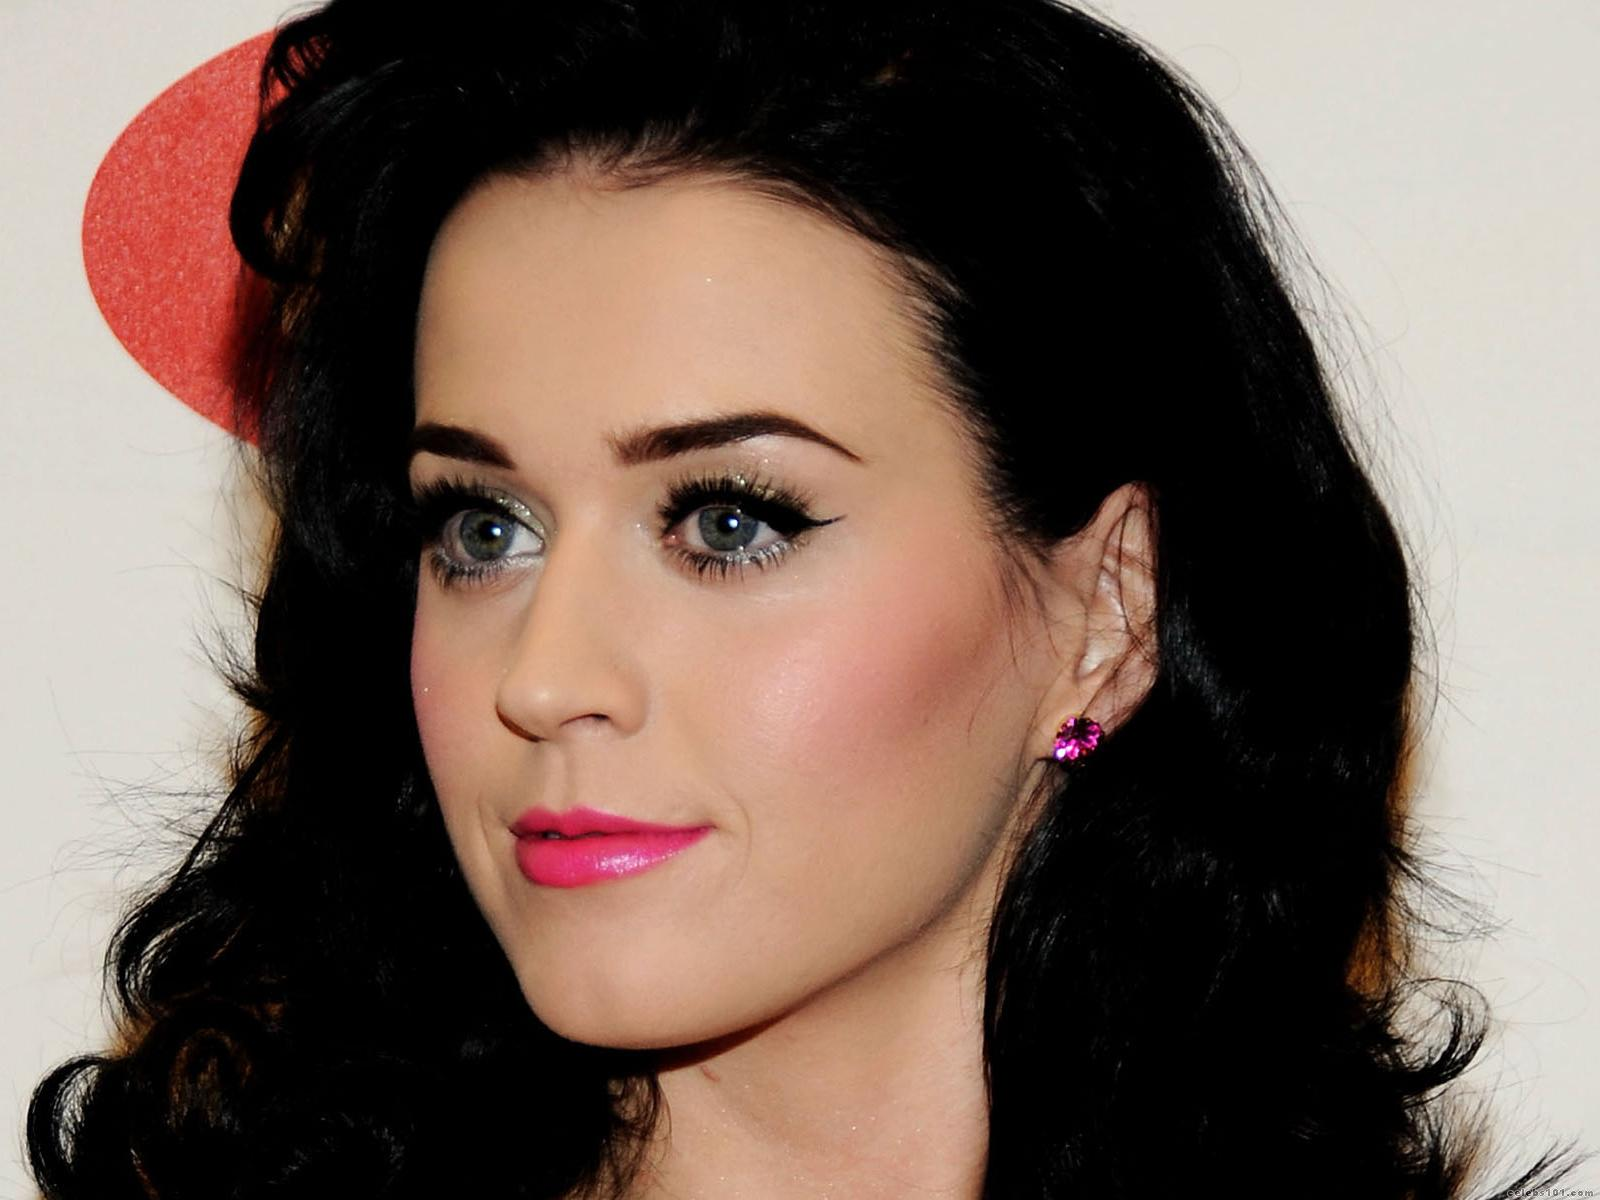 Katy Perry: Katy Perry As A Child